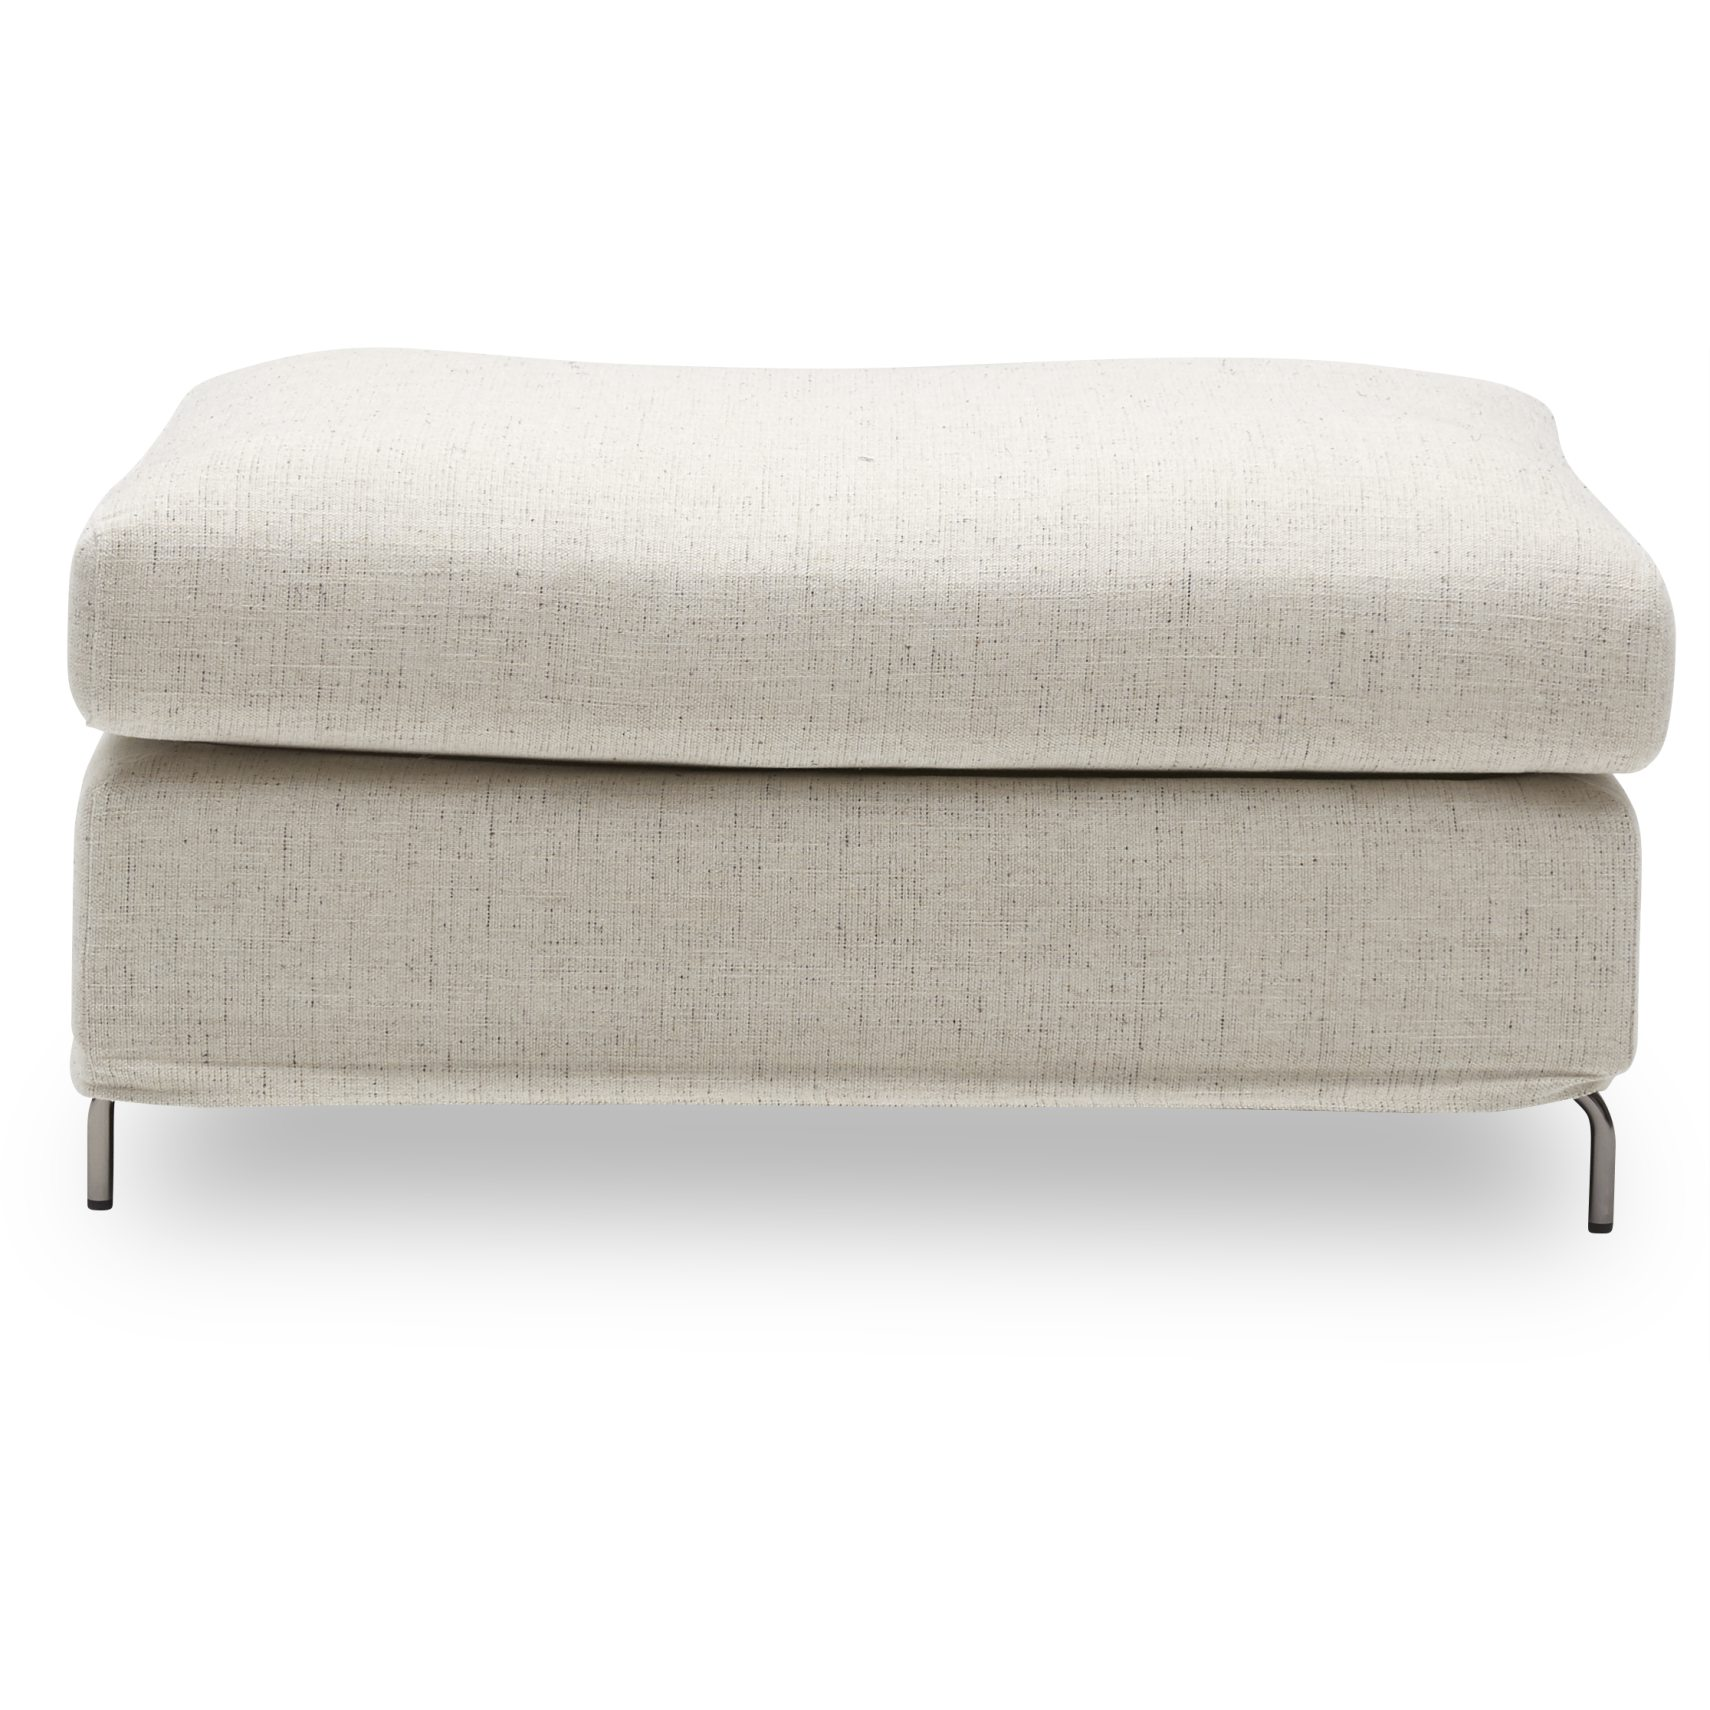 Gepetto Sofa puf - Adam 1448-01 Natural stof og ben i krom